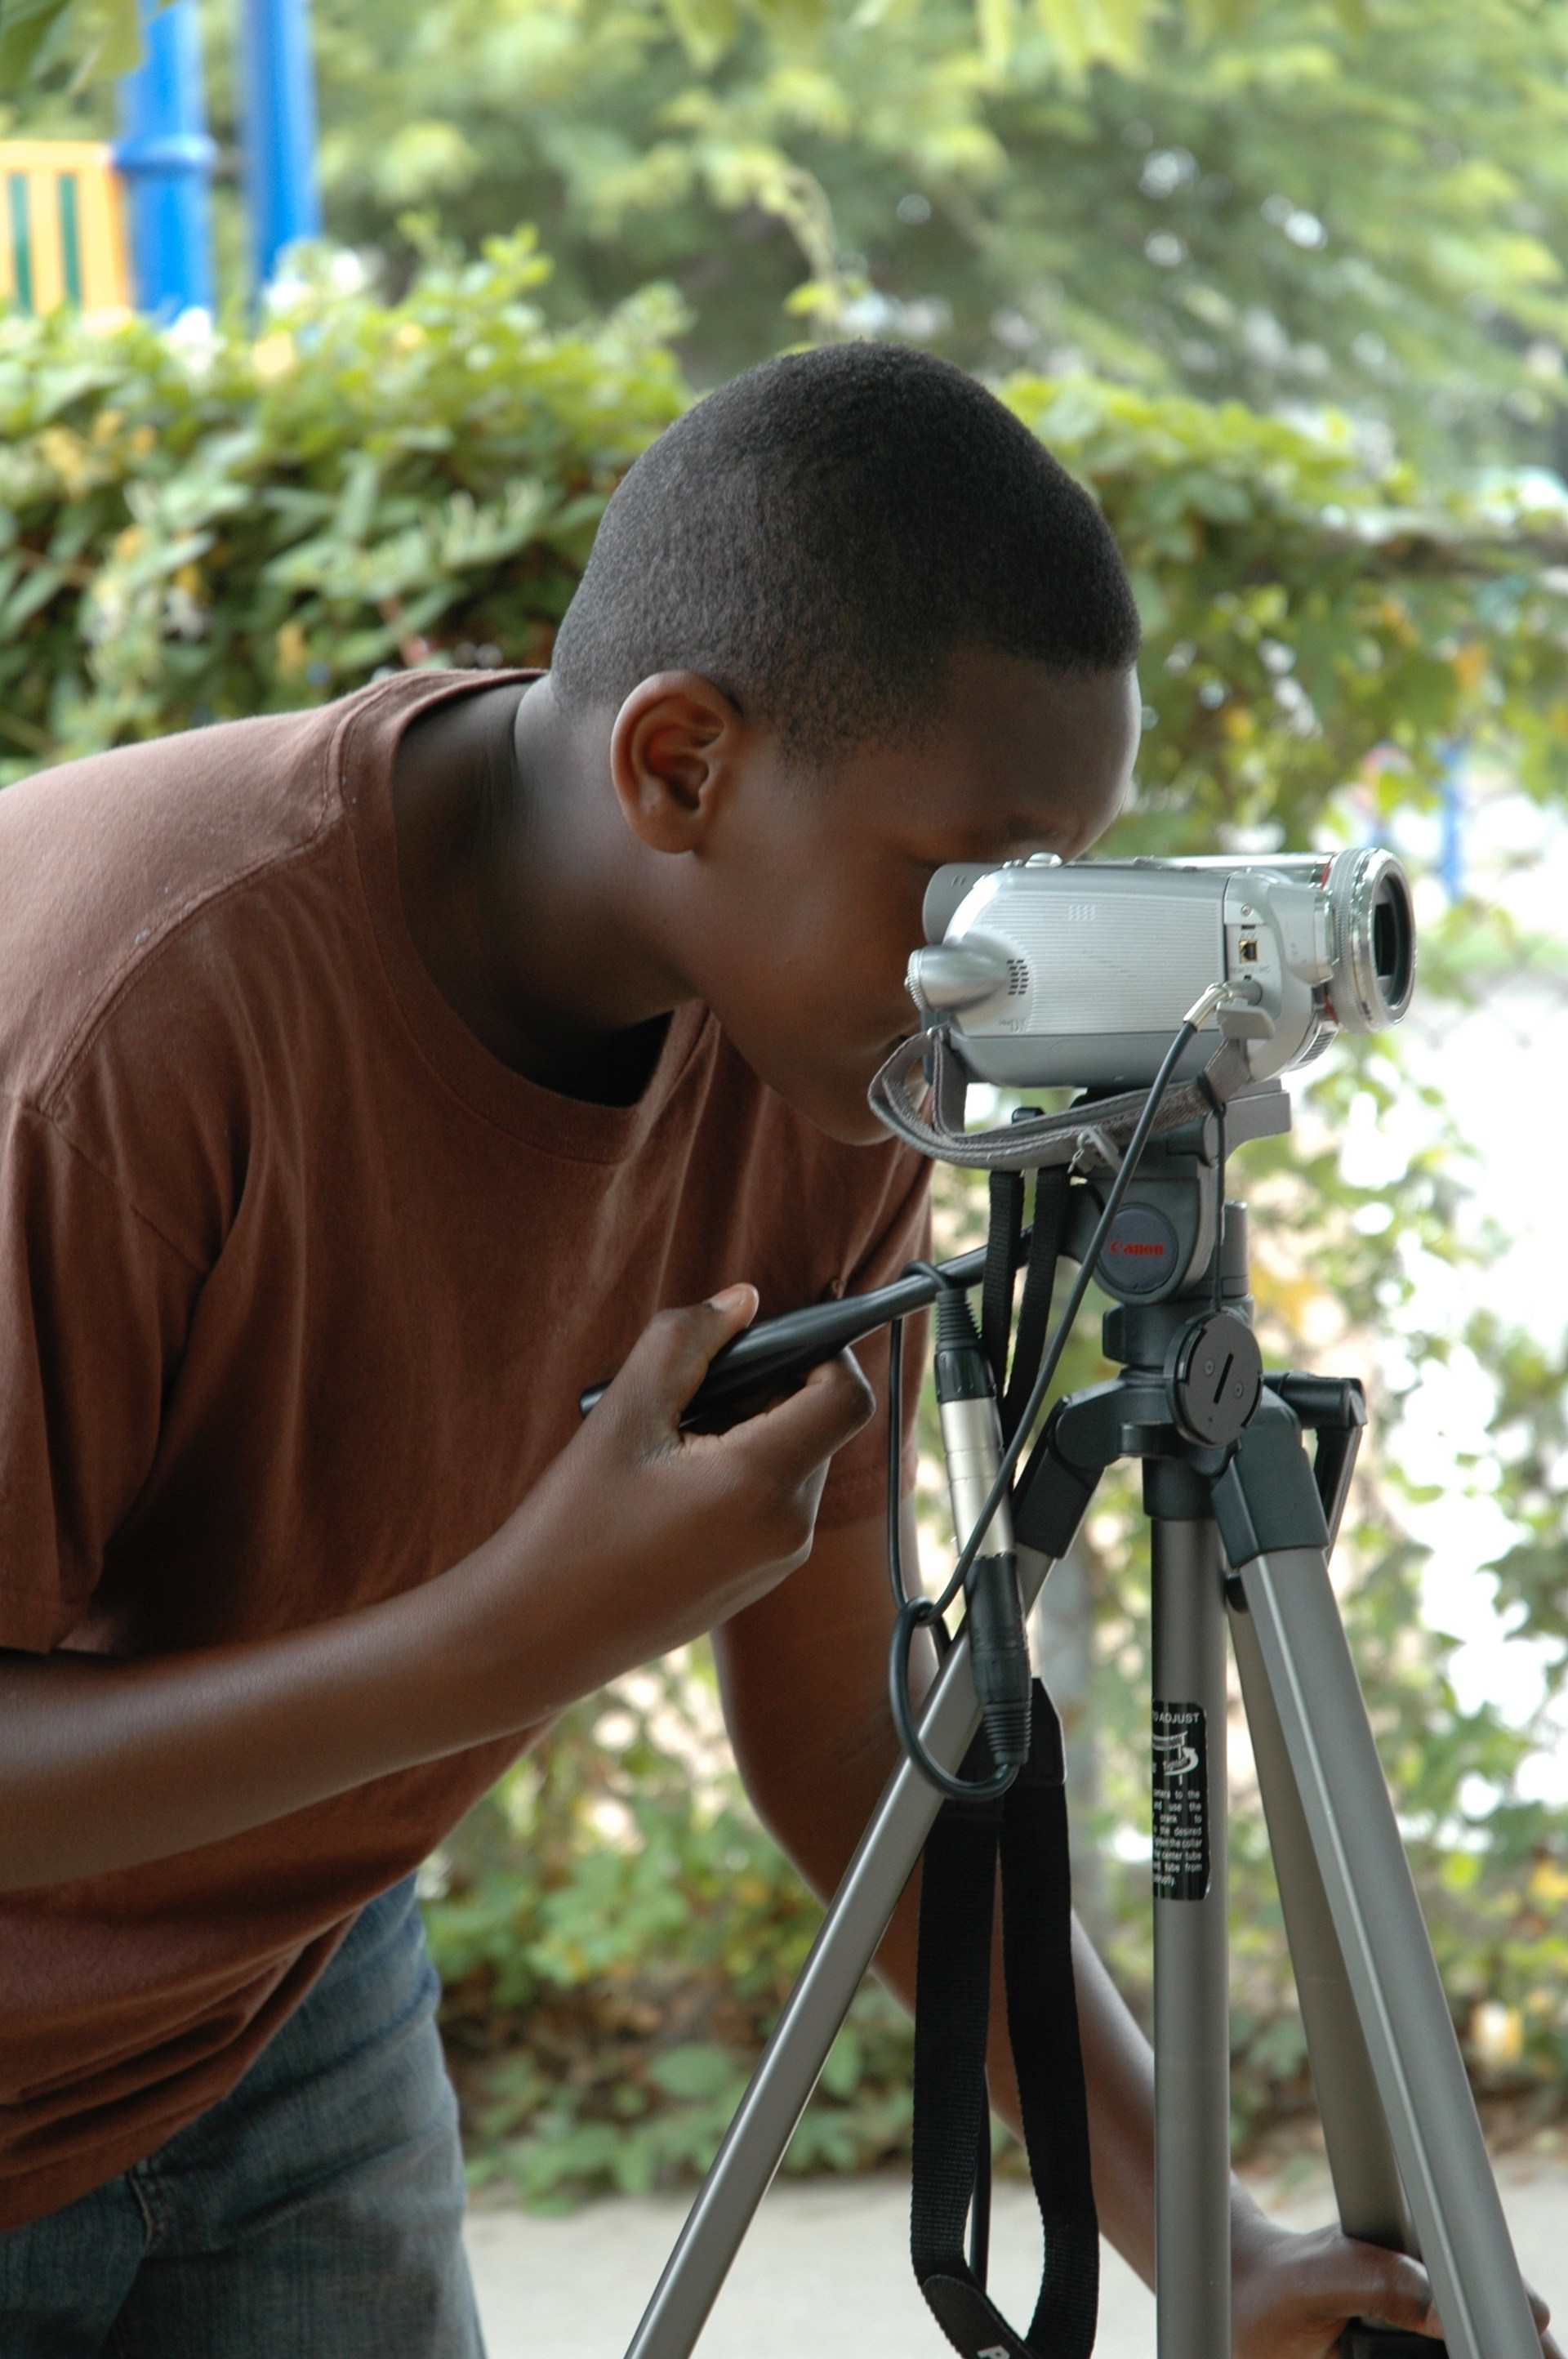 A student using a video camera.